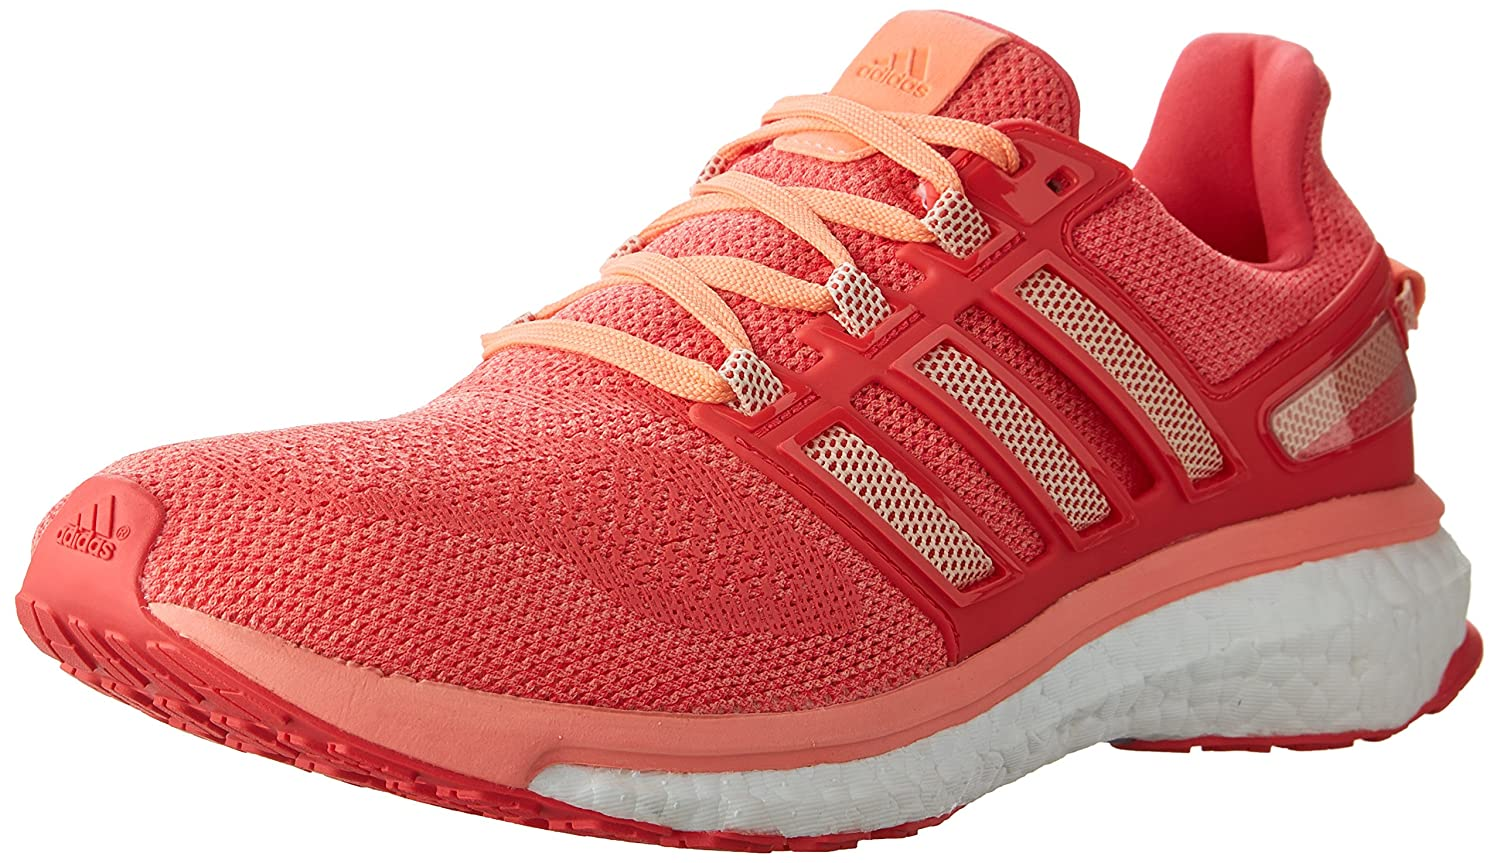 Image of adidas Women's Energy Boost 3 Running Shoes, Lightweight, Comfortable and Flexible Fit Fashion Sneakers